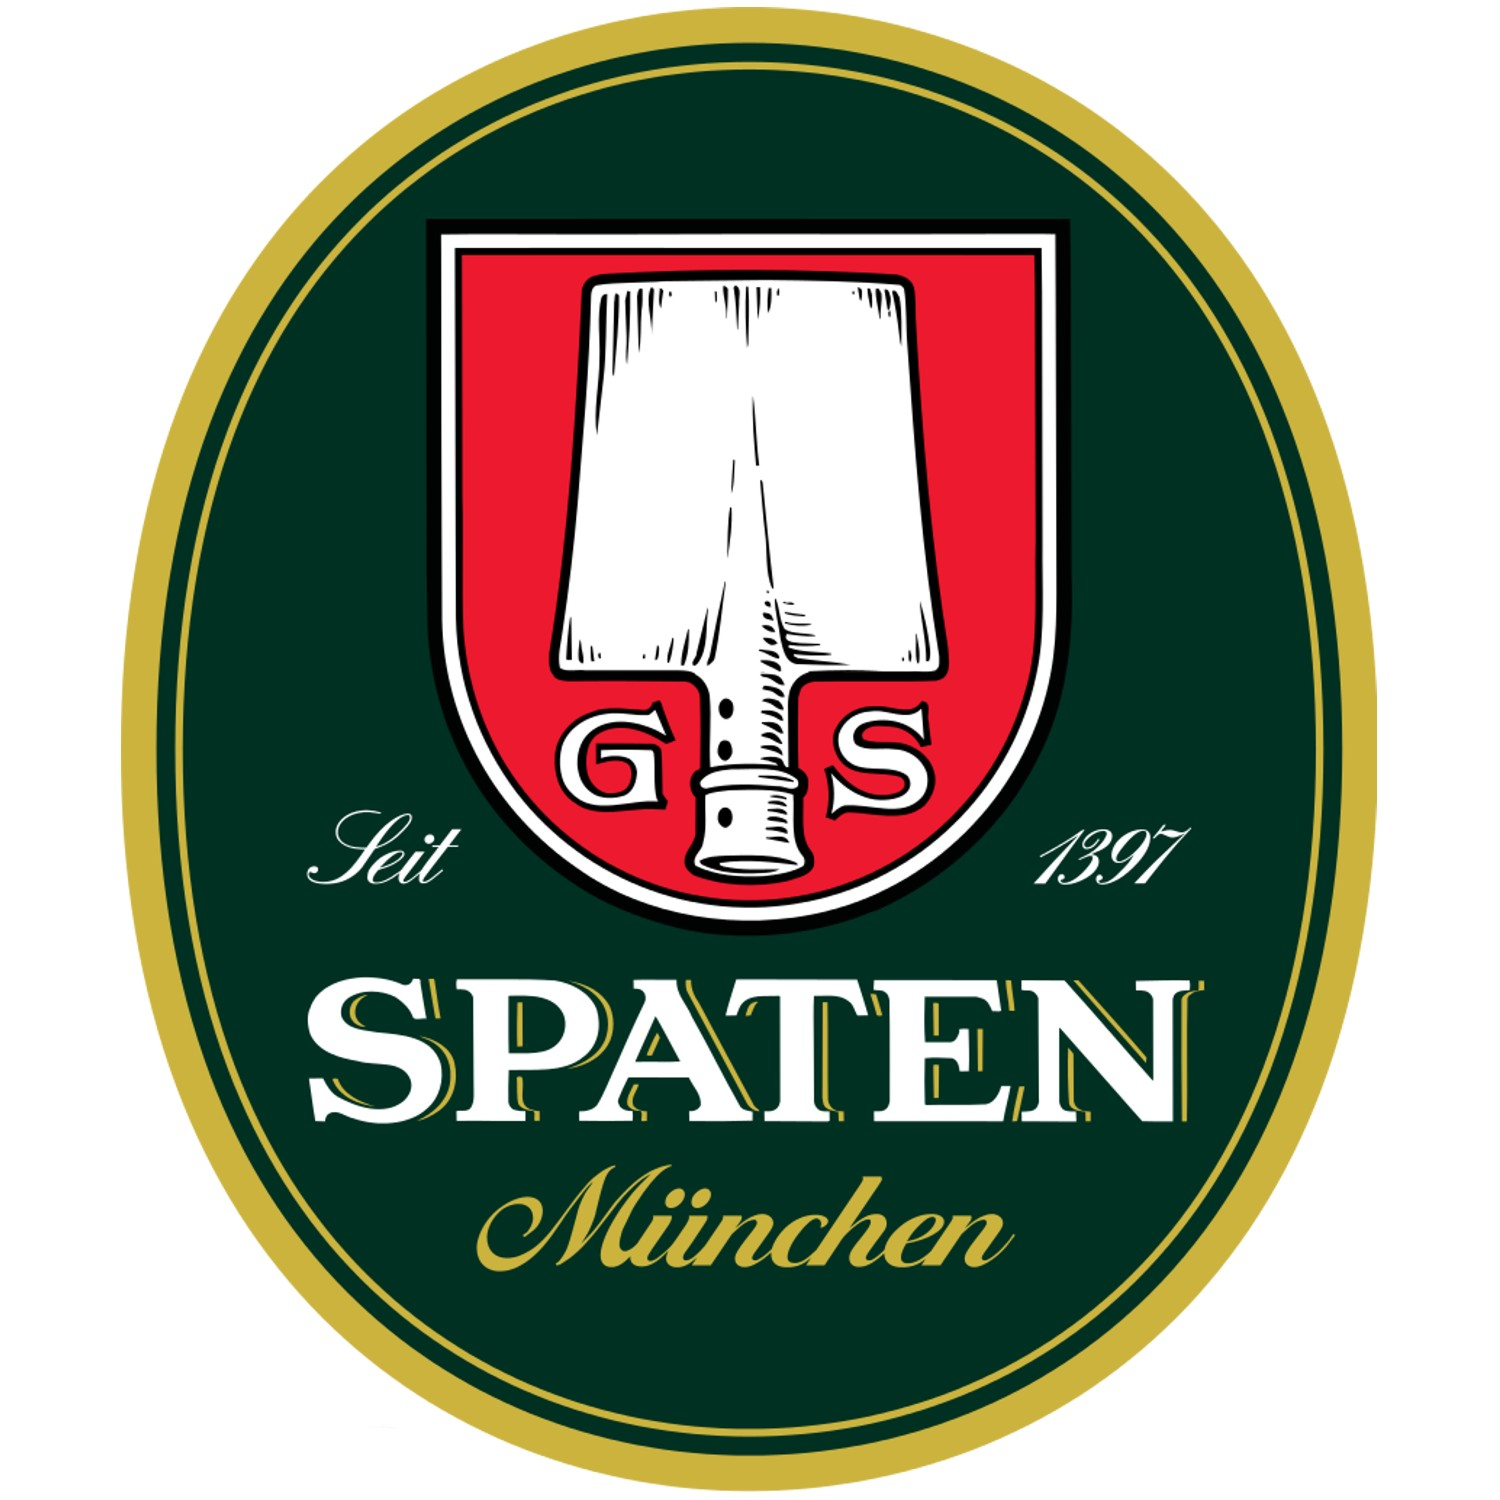 Lager München Spaten Beer Company | Leon Farmer - Beer Distribution